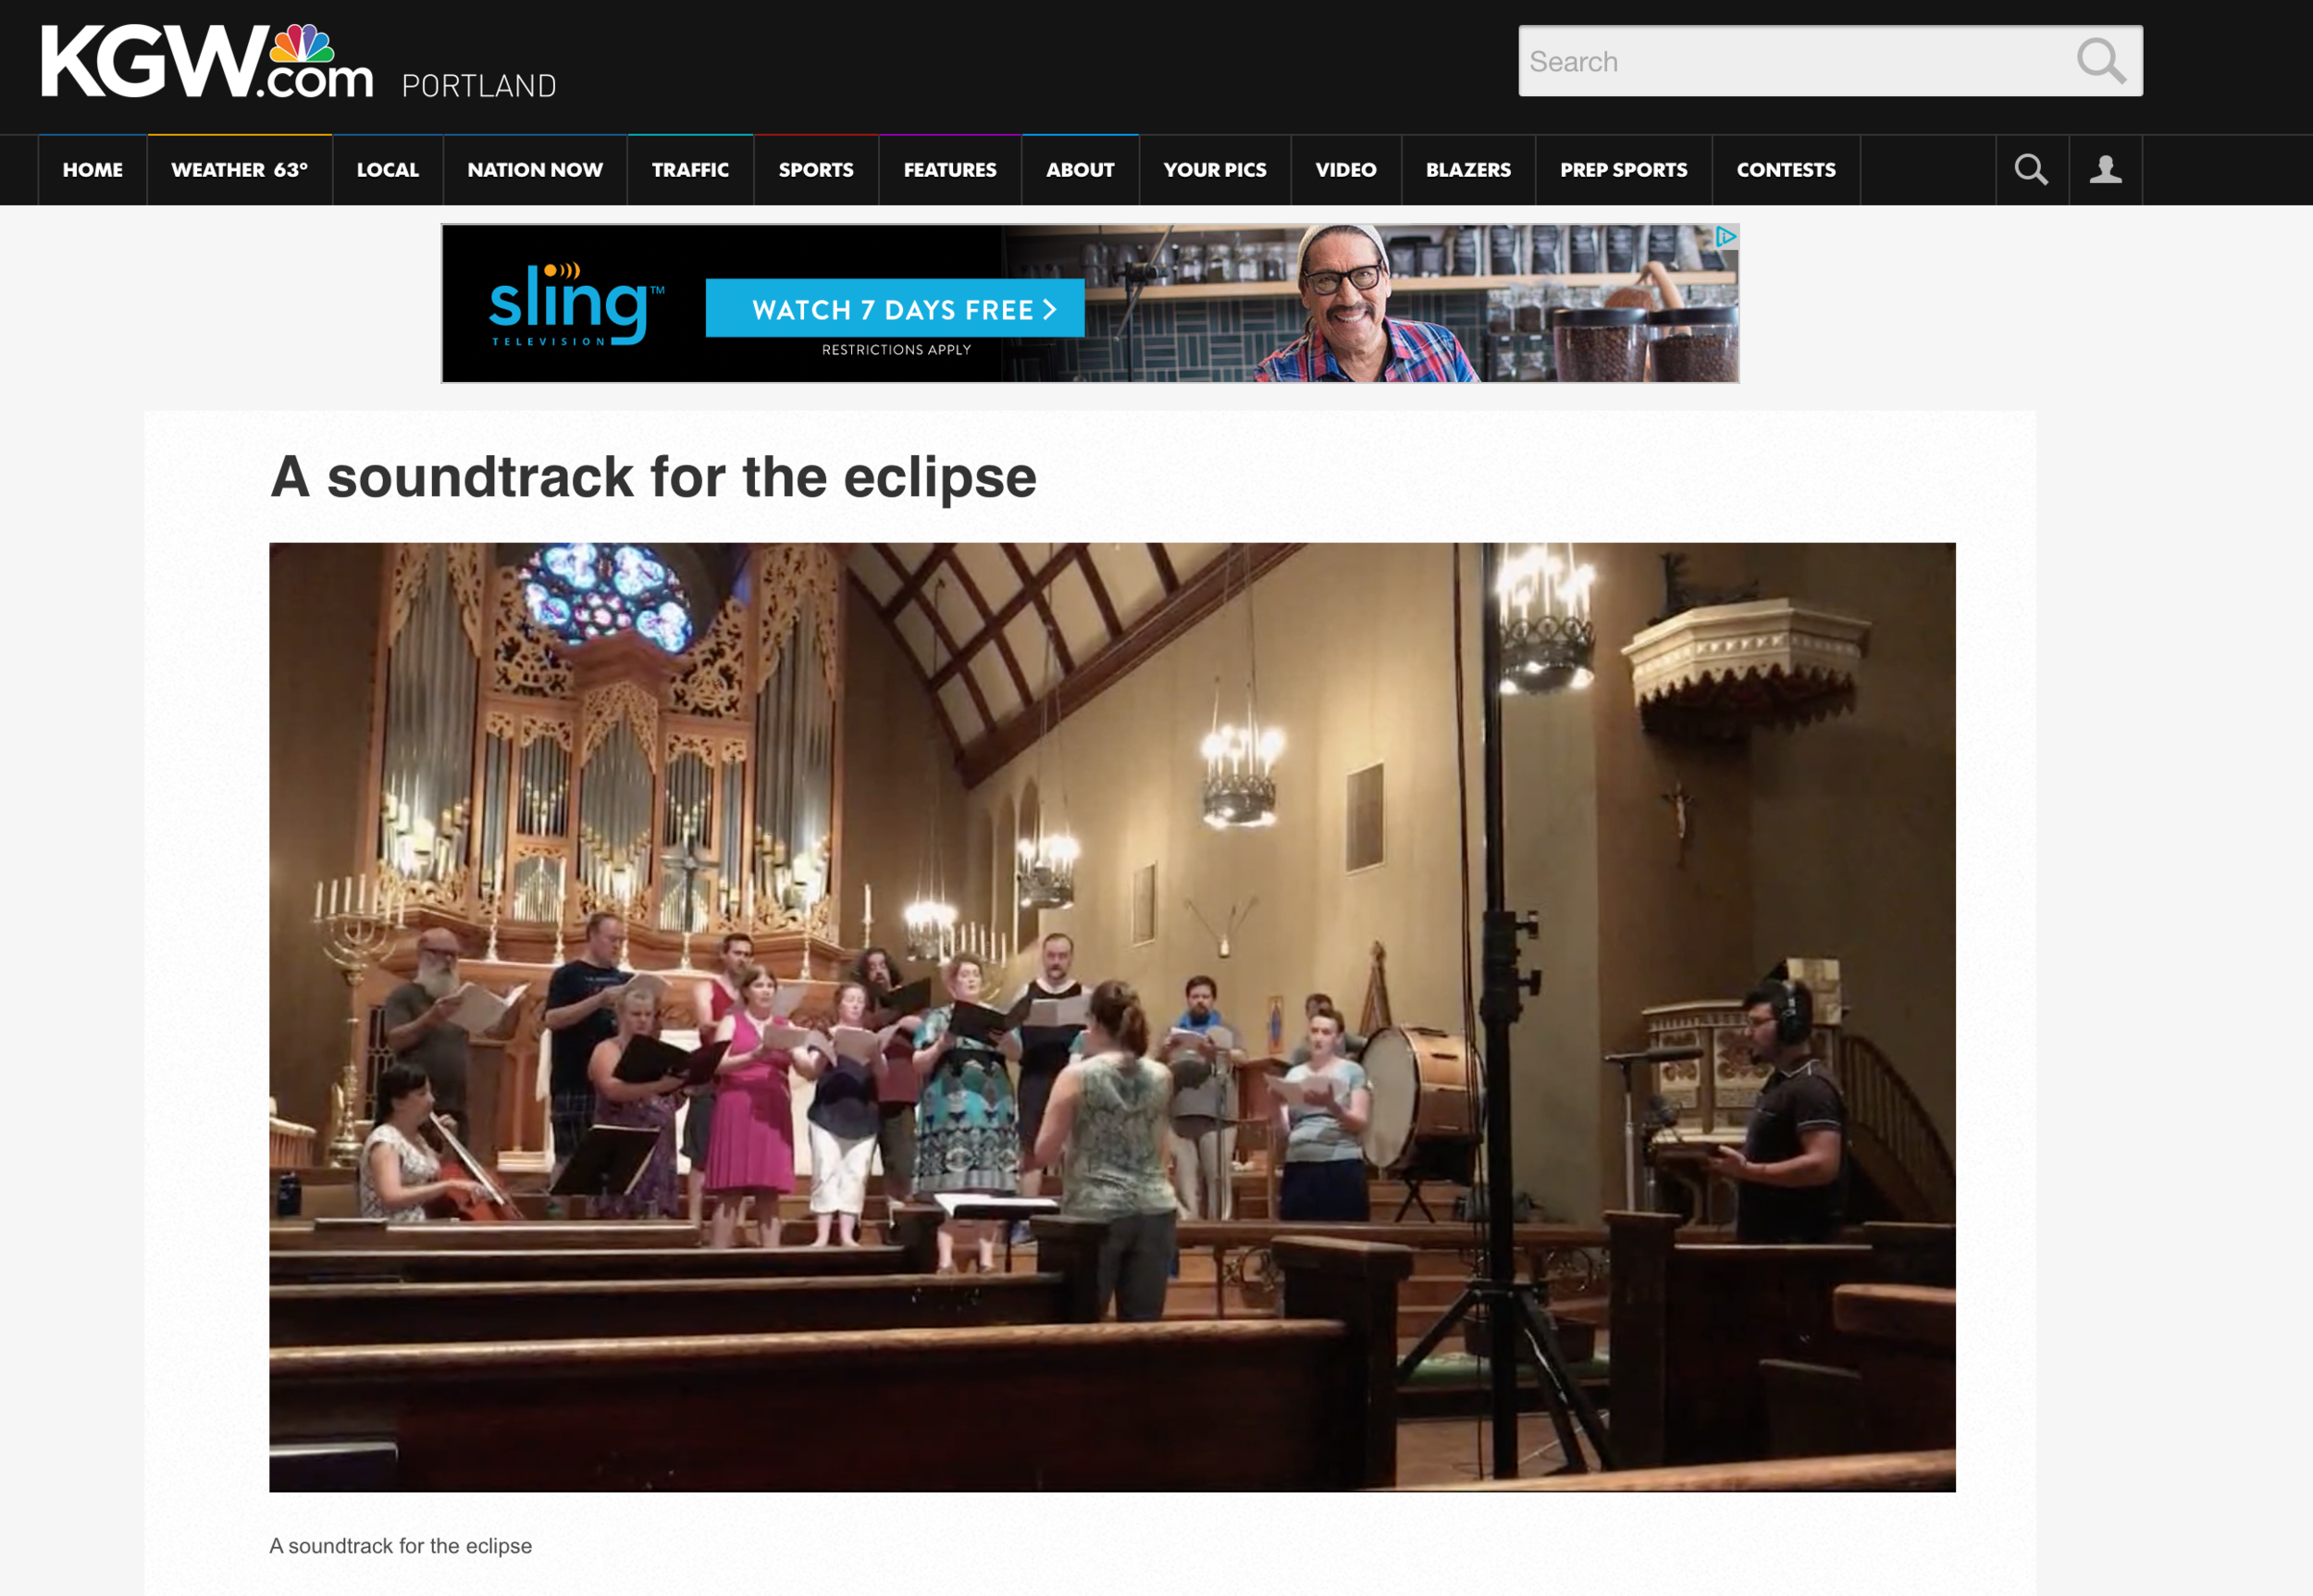 Fantastic KGW Promo!  Kudos to All Classical Portland's, Suzanne Nance and  The Body of The Moon  composer Desmond Earley for this great interview on KGW about our upcoming soundtrack for the eclipse, being performed by Resonance Ensemble, Nancy Ives, Chris Whyte, and Erick Valle.   Check it out!